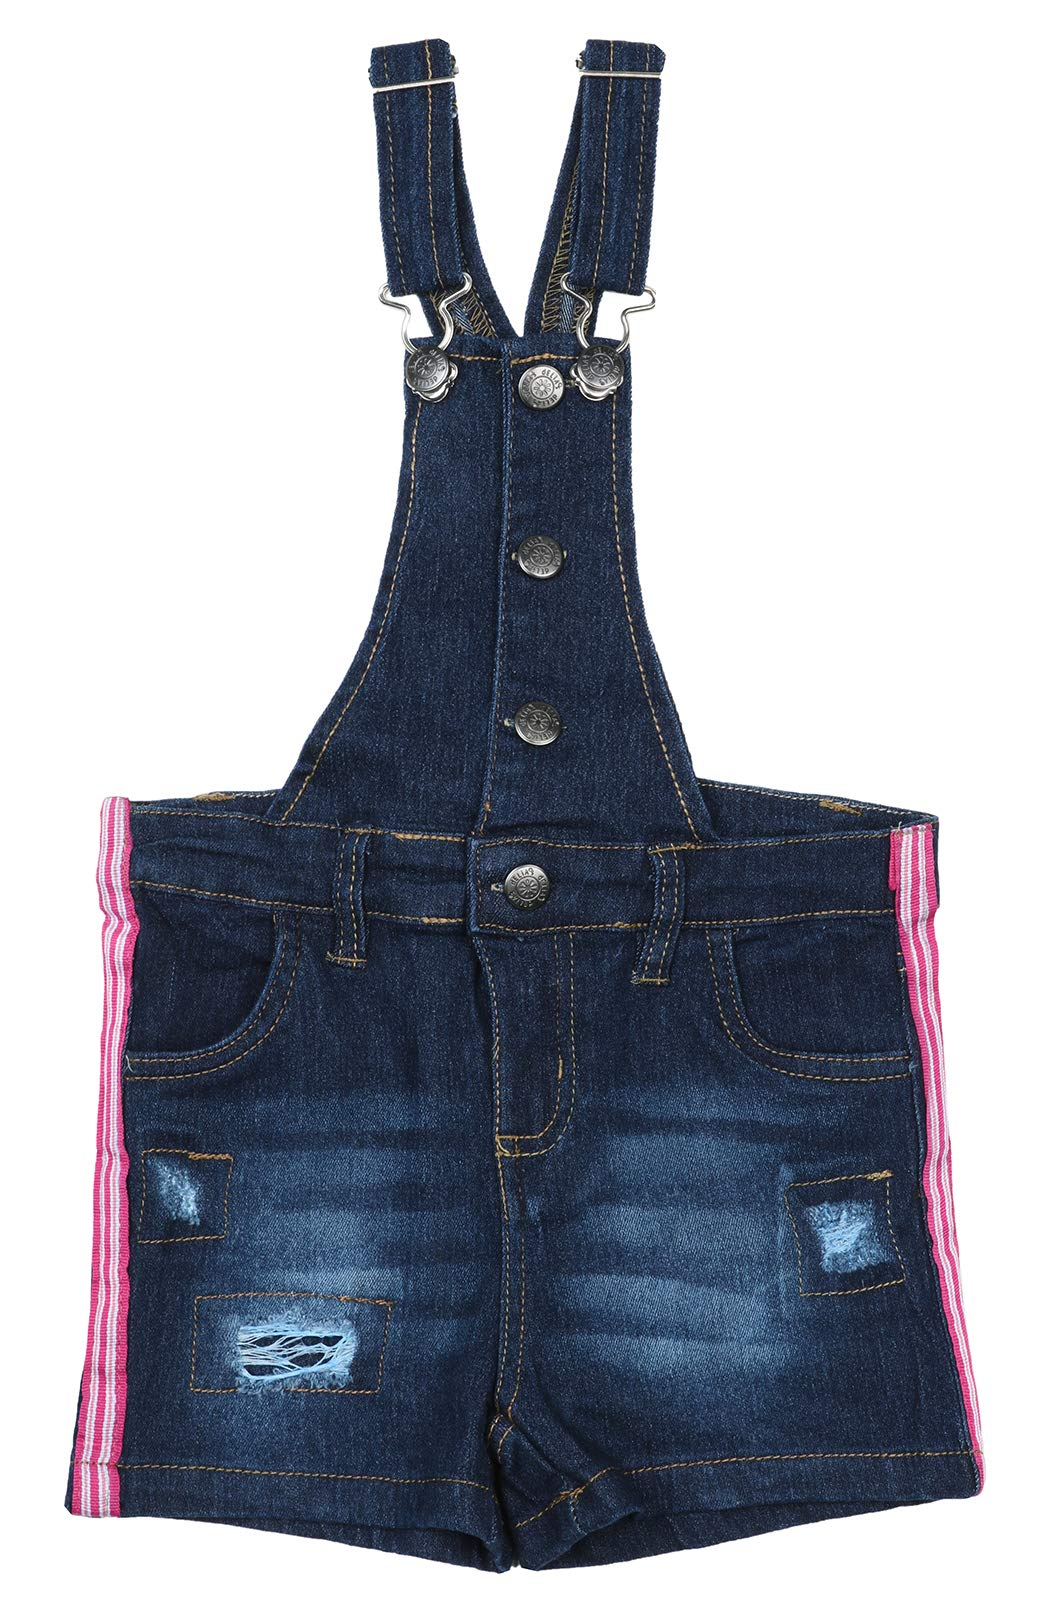 dELiAs Girls Bib Overall Denim Shorts with Adjustable Straps, Dark Side Stripes, Size 14' by dELiA*s